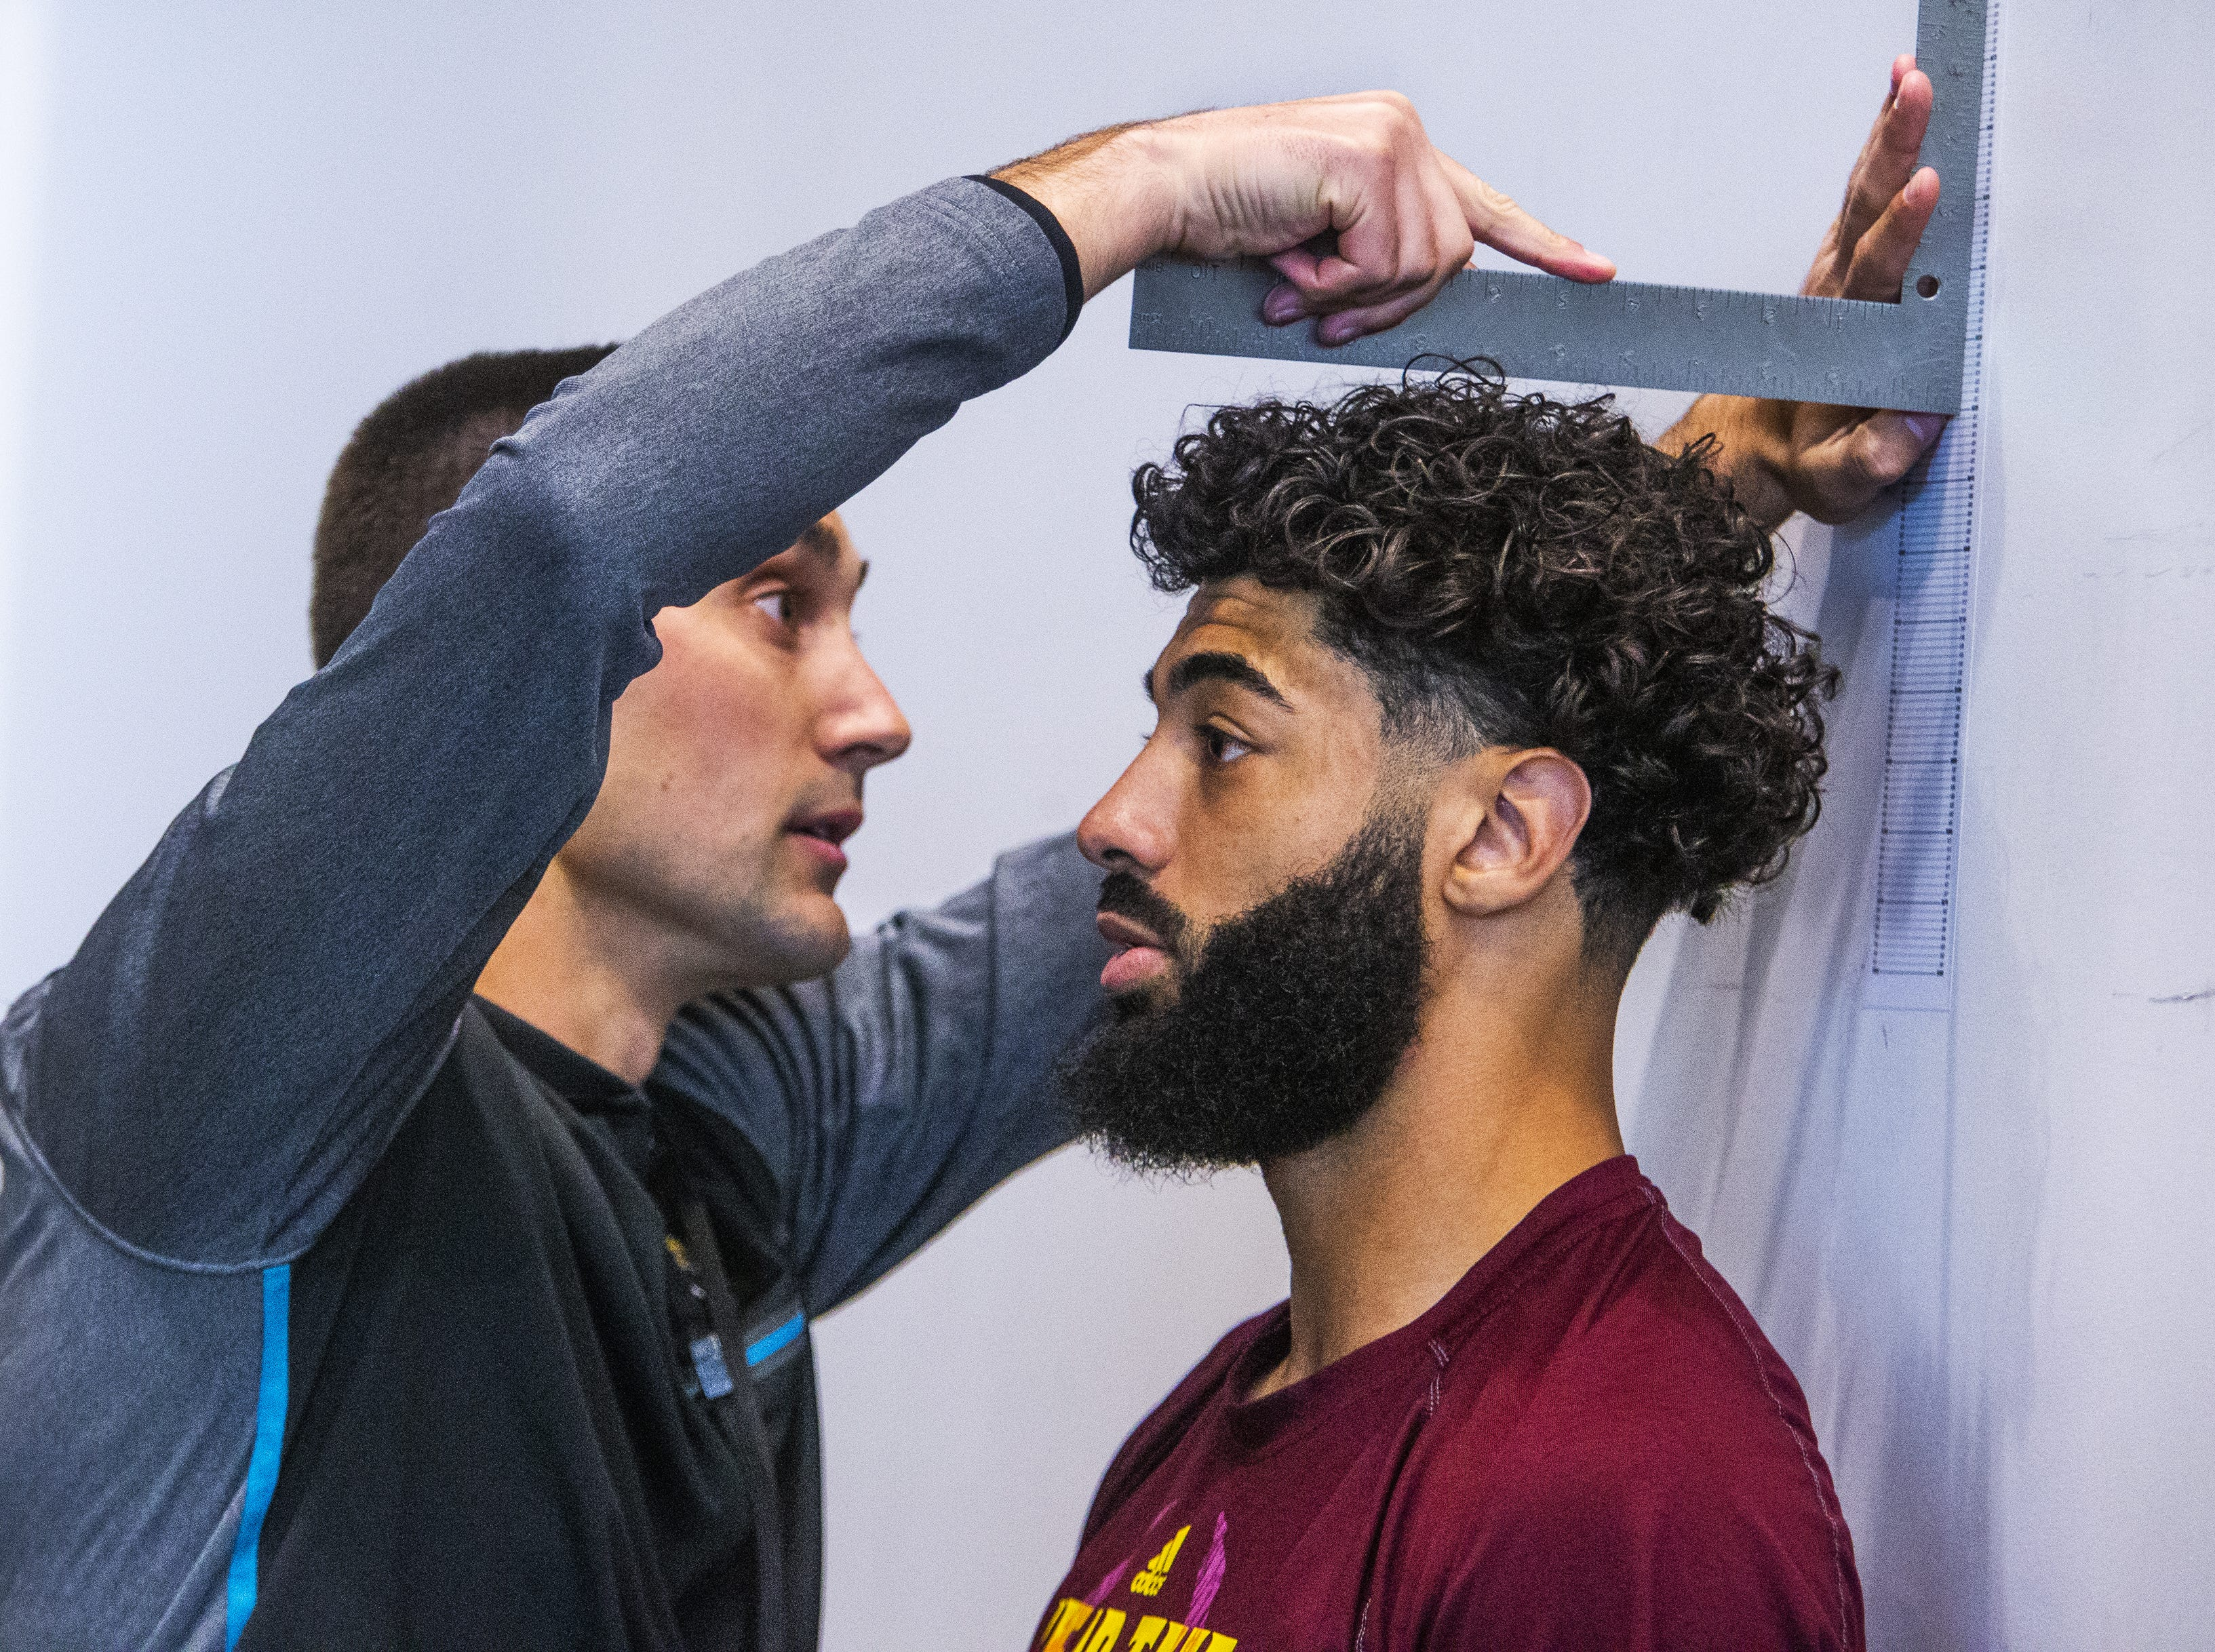 Former Arizona State University quarterback Manny Wilkins, Jr., is measured at the 2019 Football Pro Day held on campus, Wednesday, March 27, 2019.